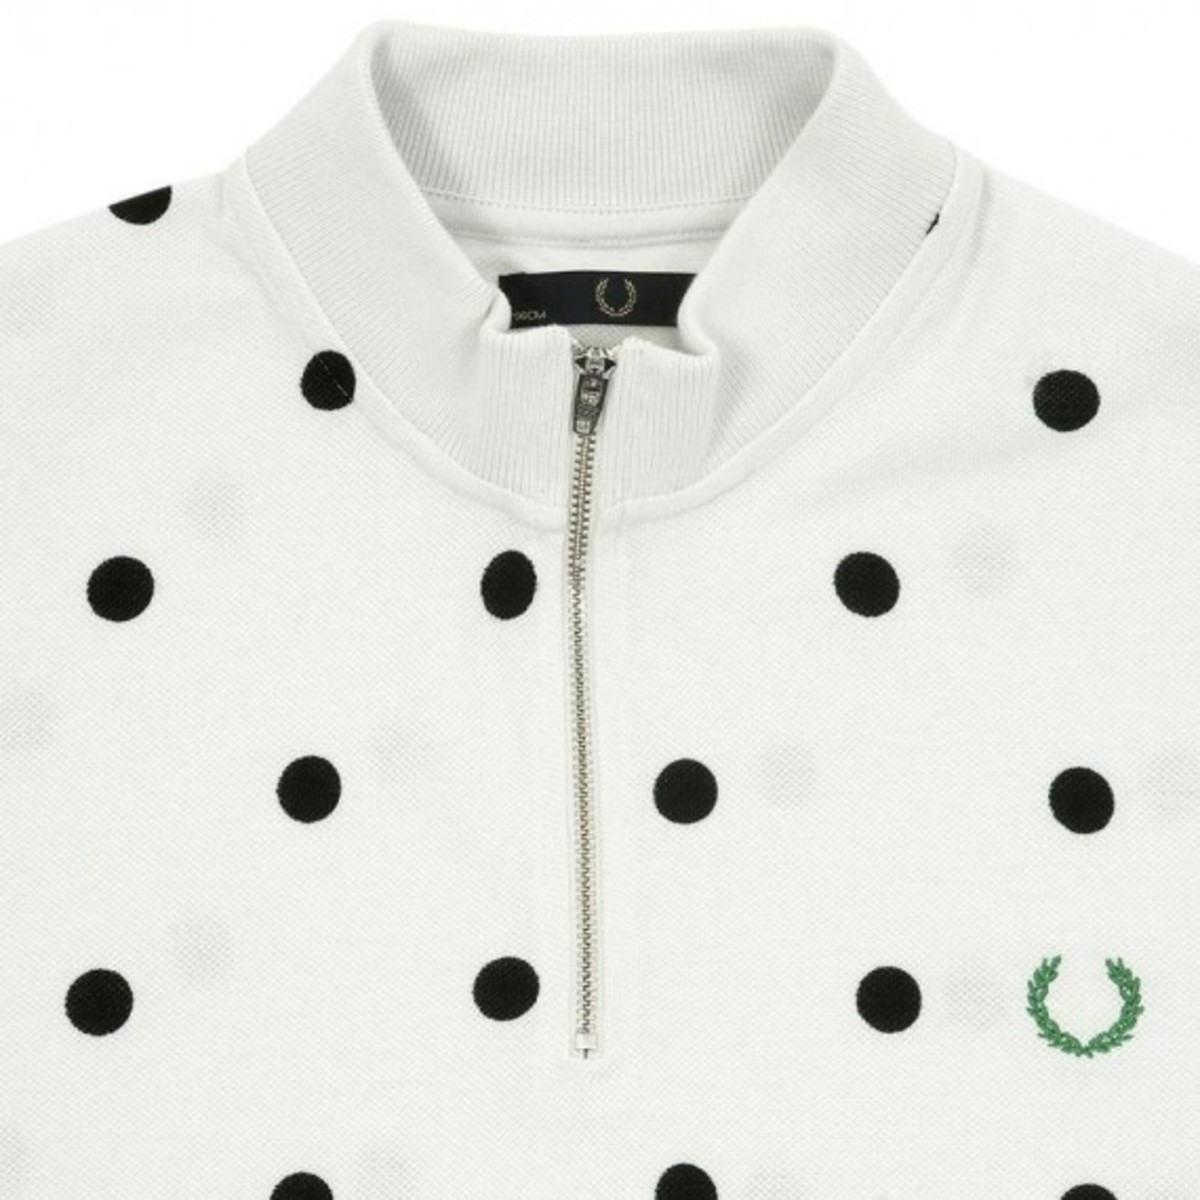 fred-perry-laurel-wreath-blank-canvas-cycling-21